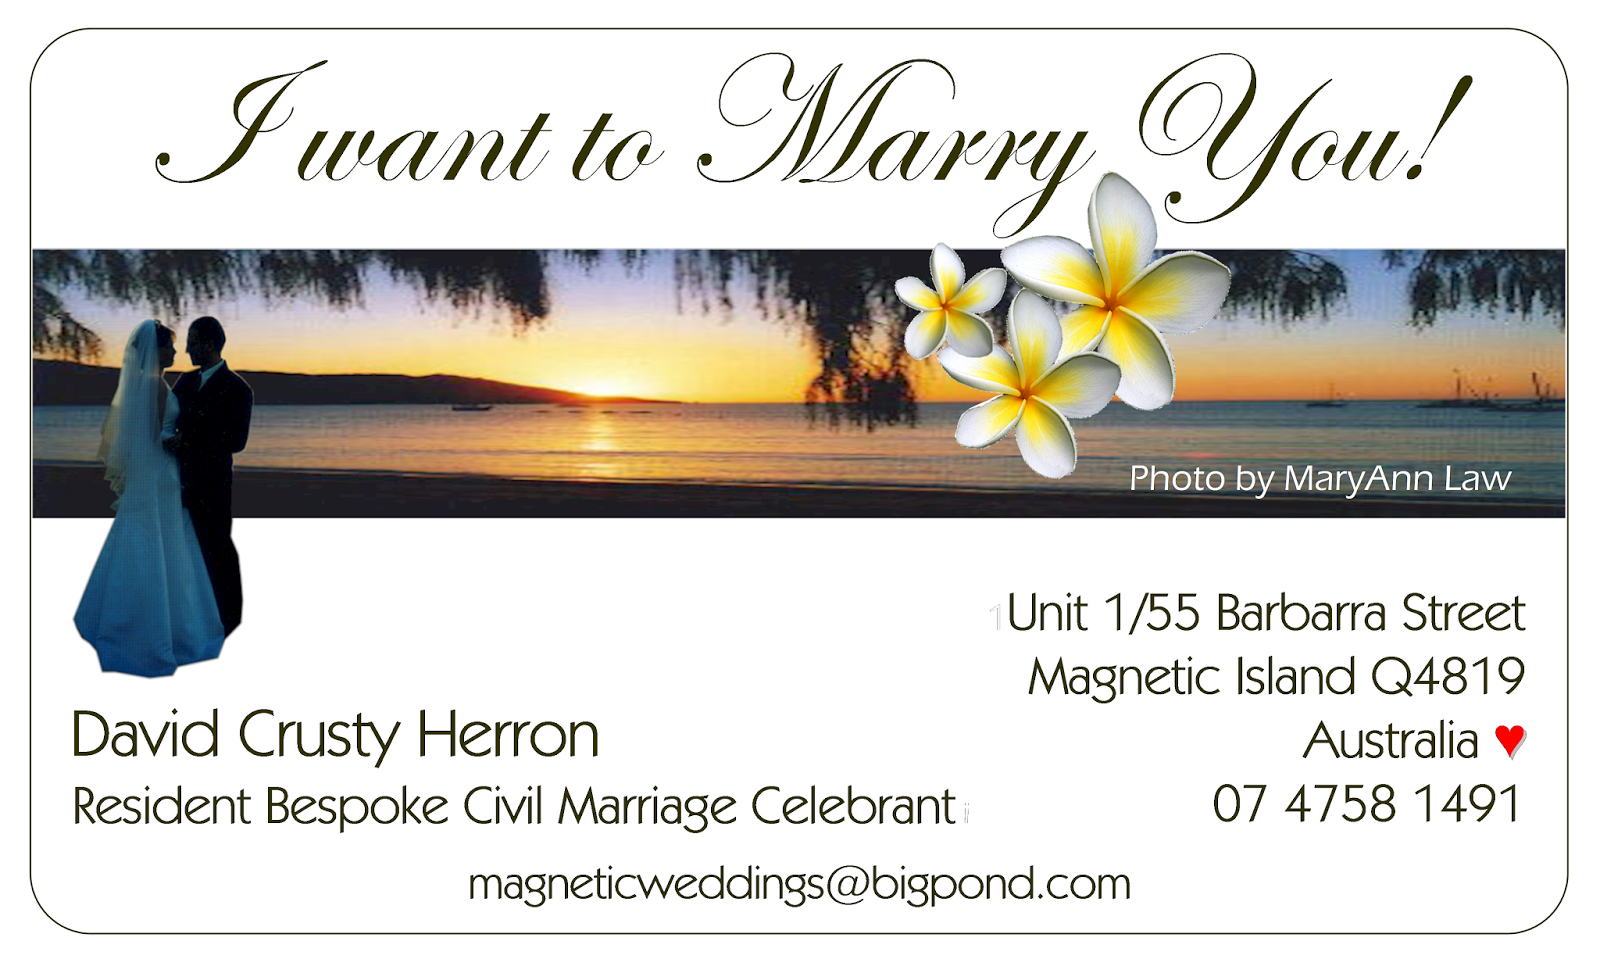 Magnetic Island Weddings Ceremony Help Line: I want to Marry You ...